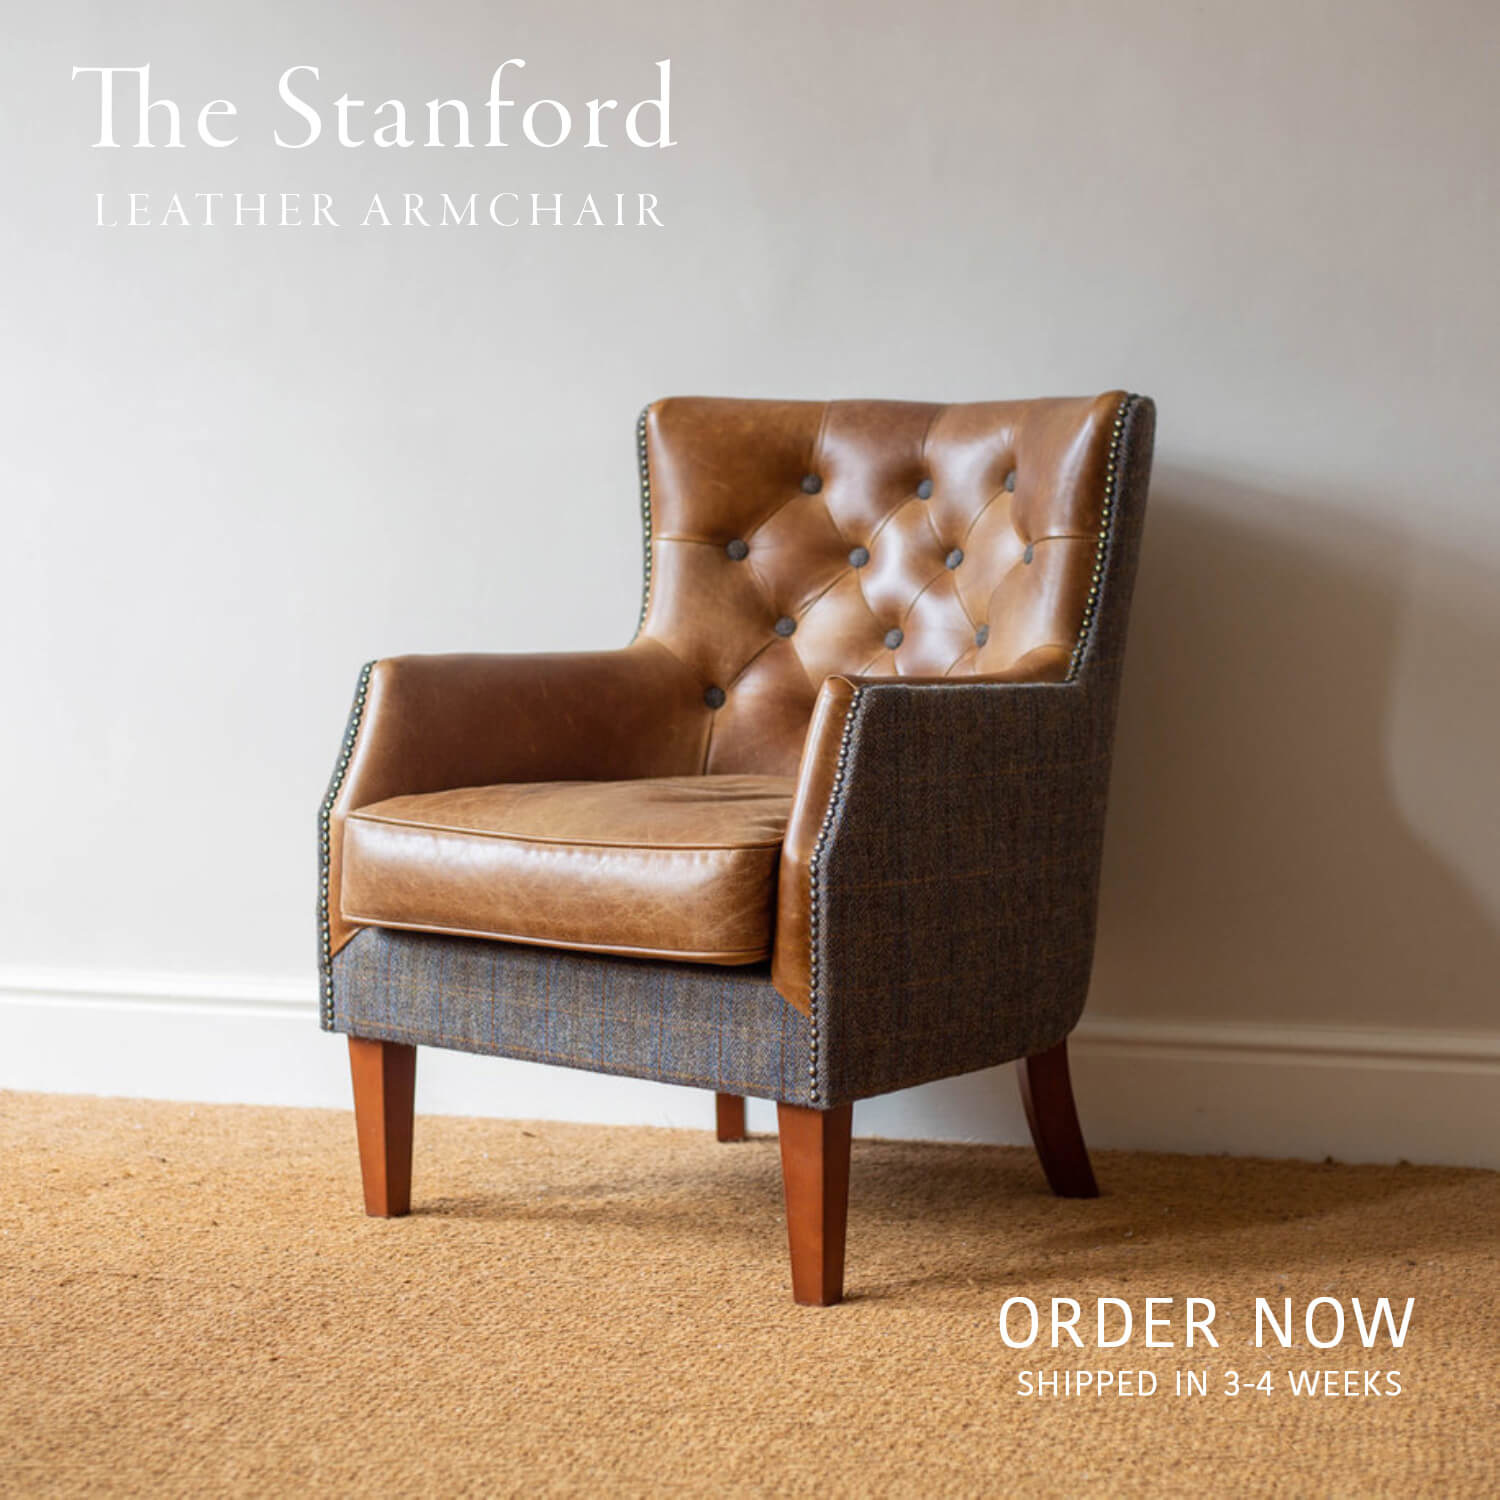 The Stanford Leather Armchair - Trading Boundaries Sussex